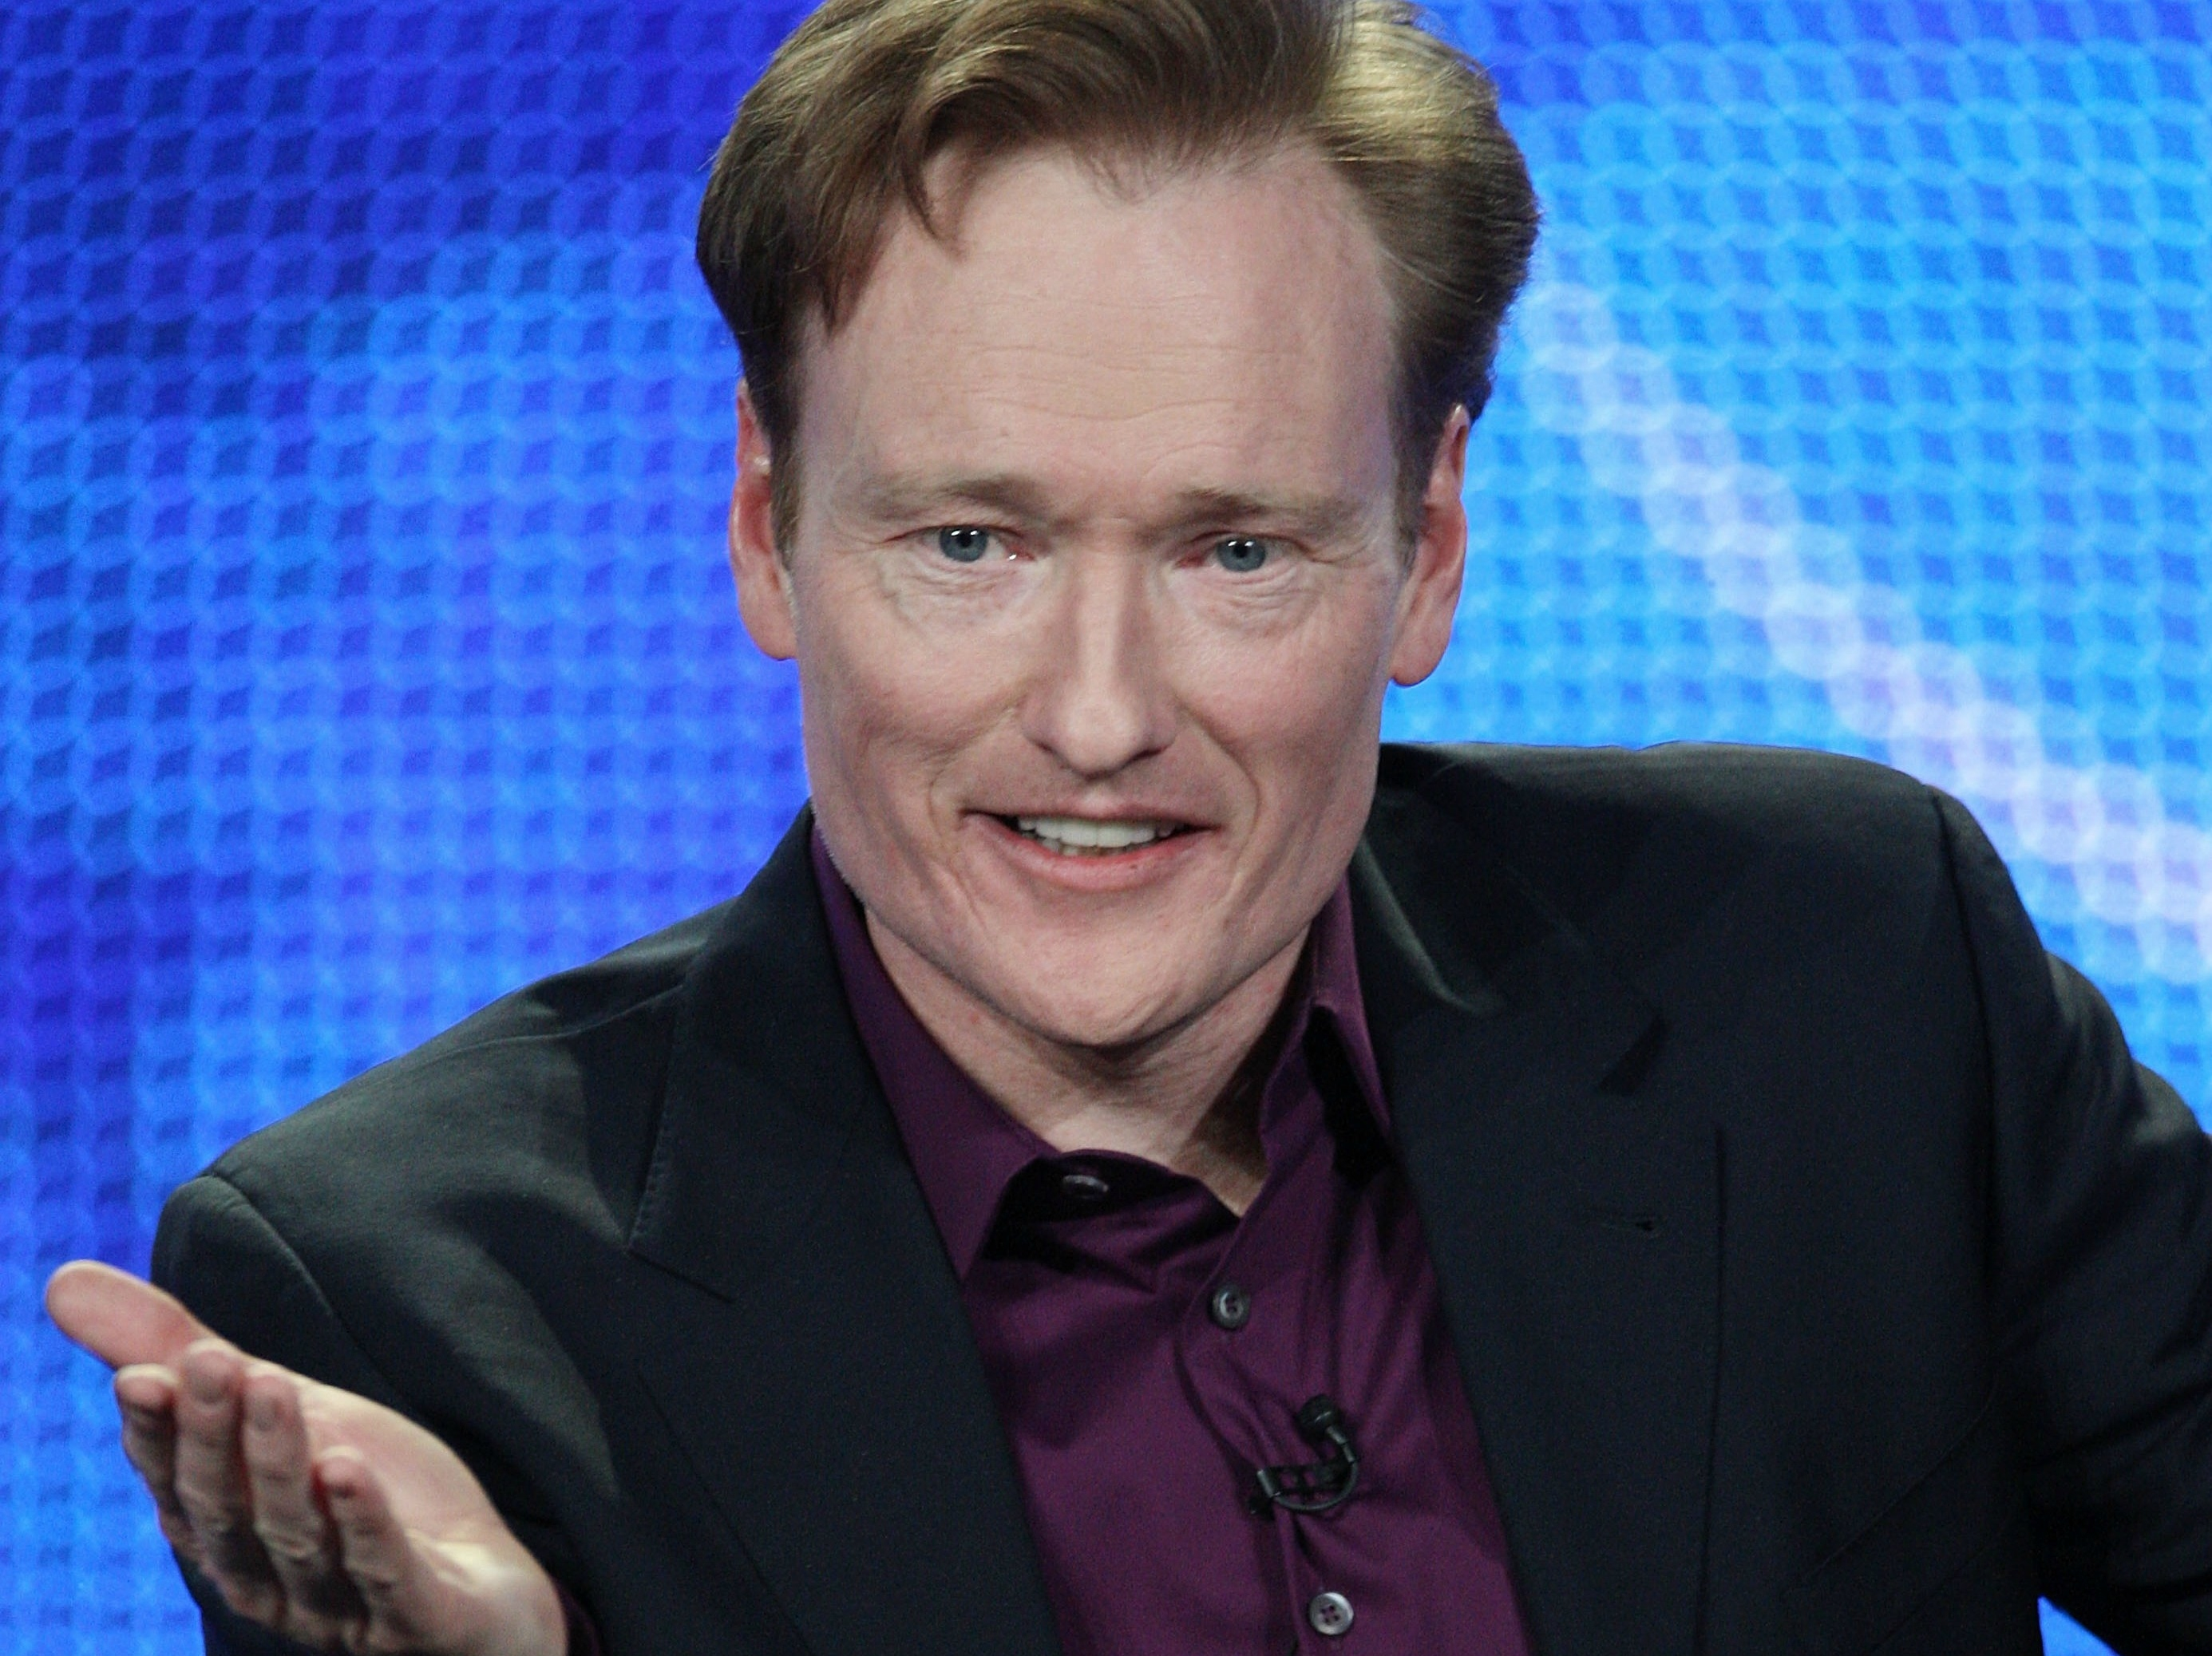 Mocking Obama: Conan O'Brien Shows How It's Done